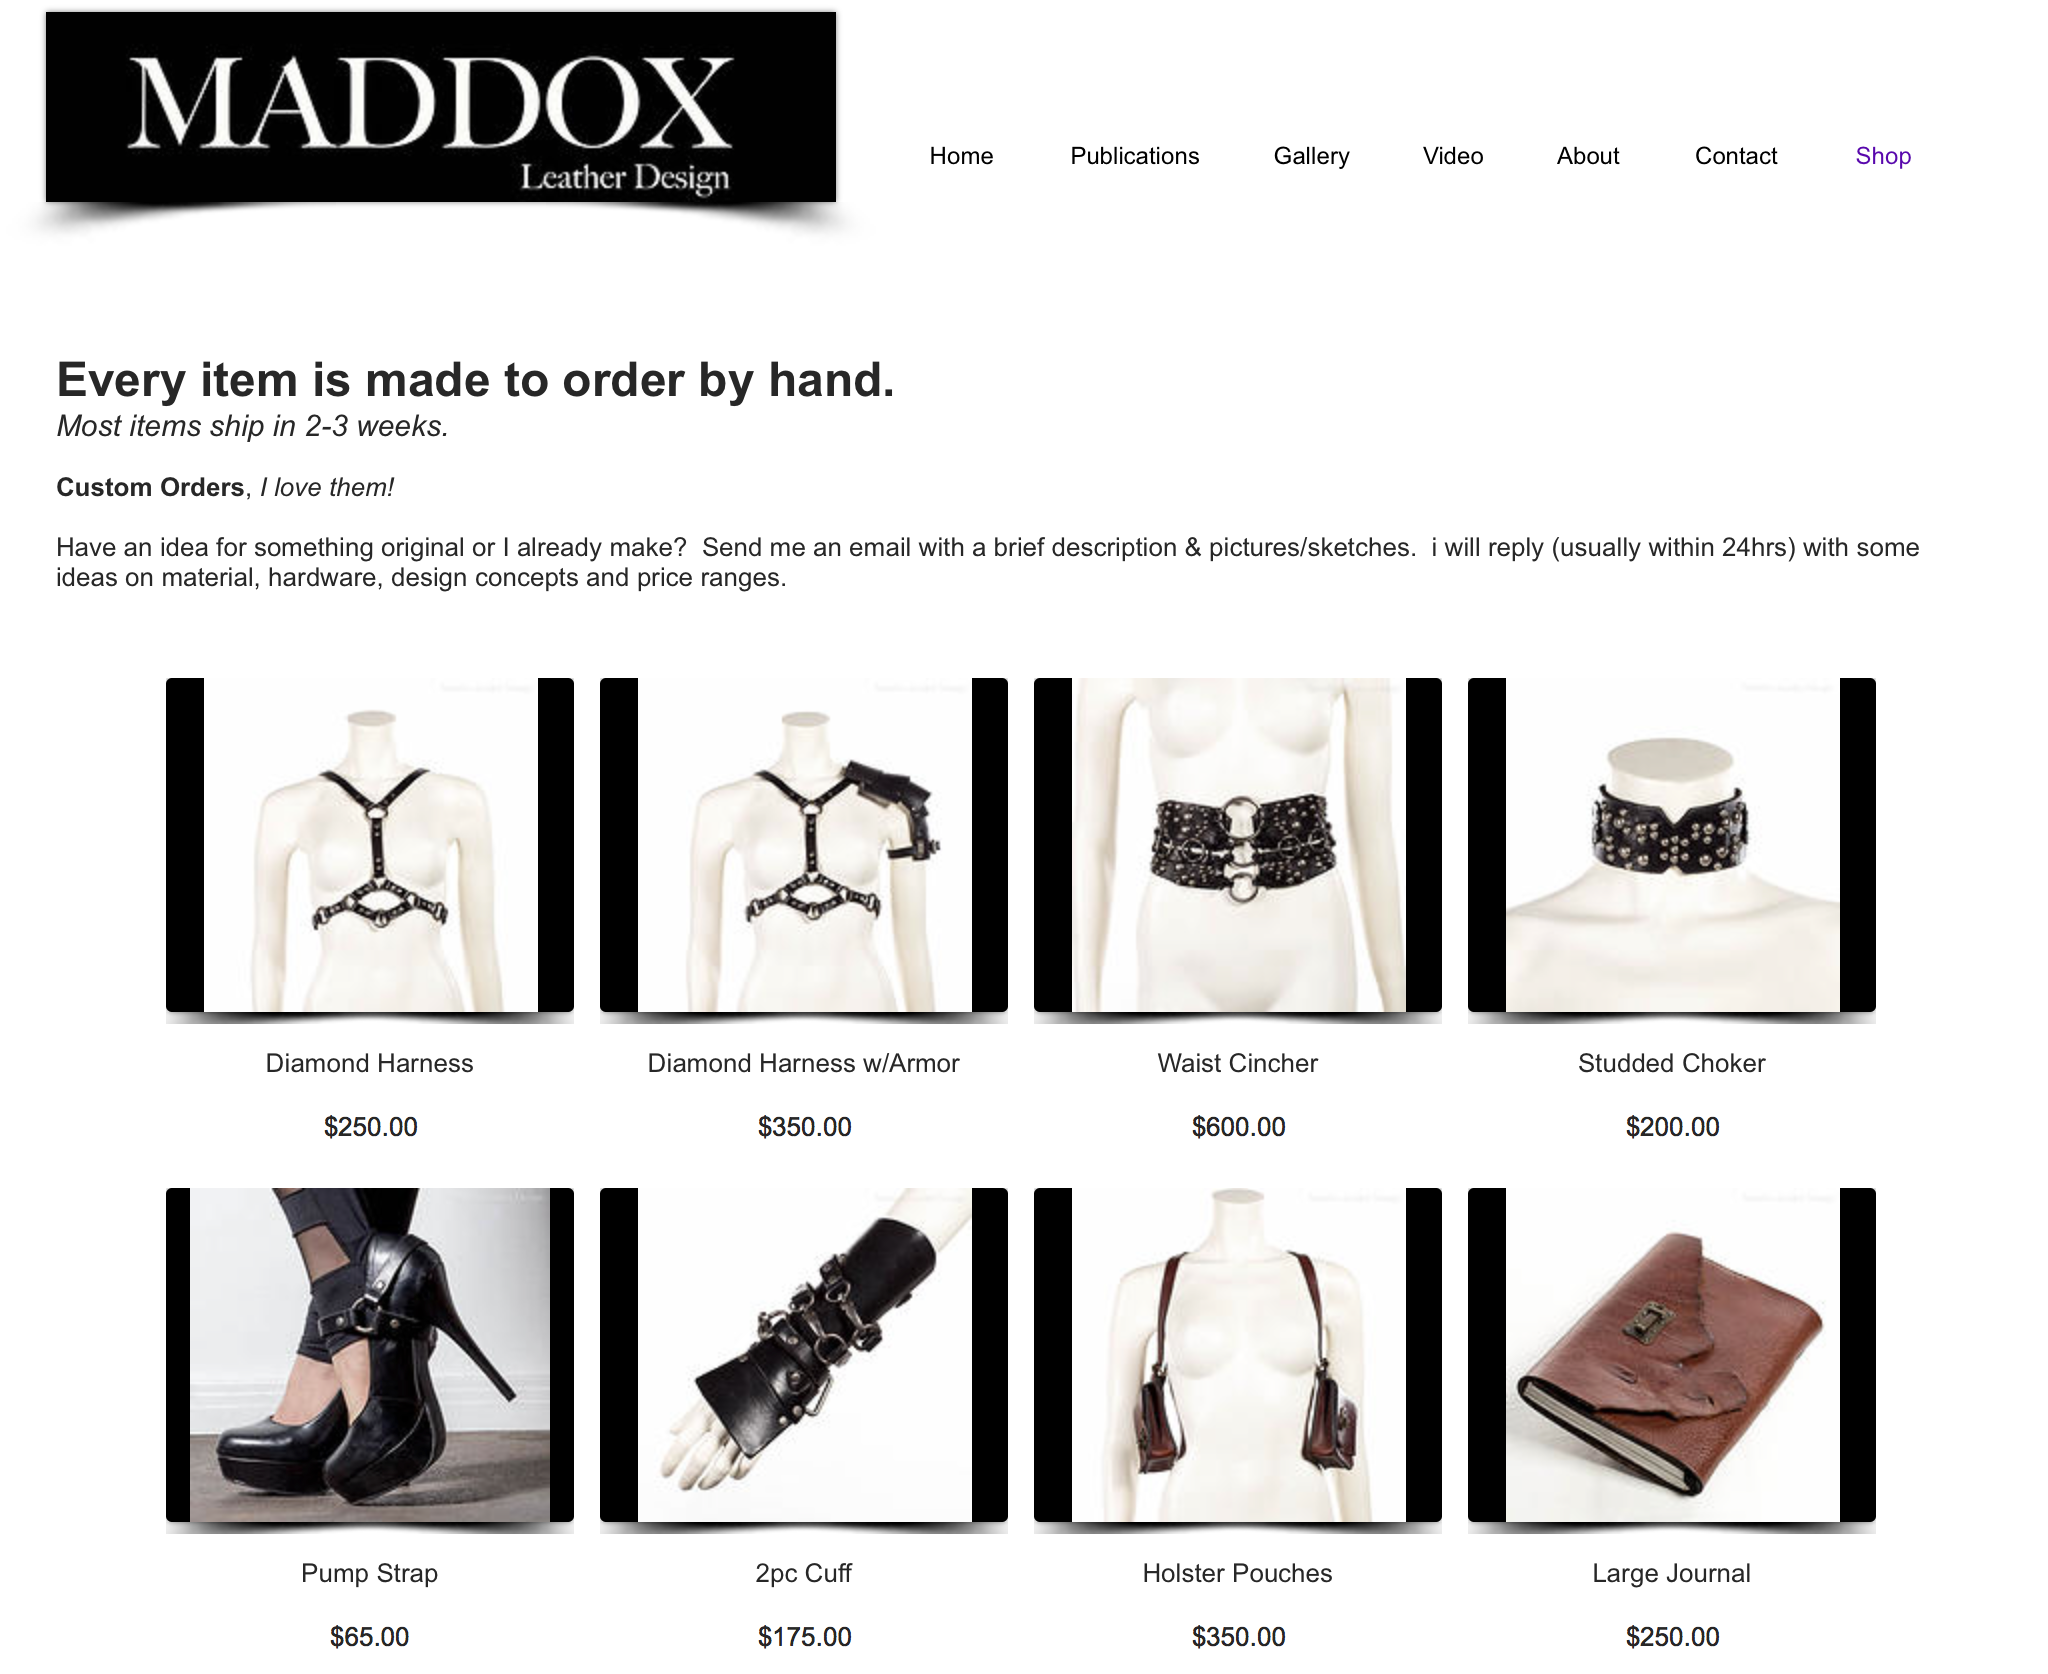 The Maddox Leather web-shop has a few items, but really the main option is the customization of your order!